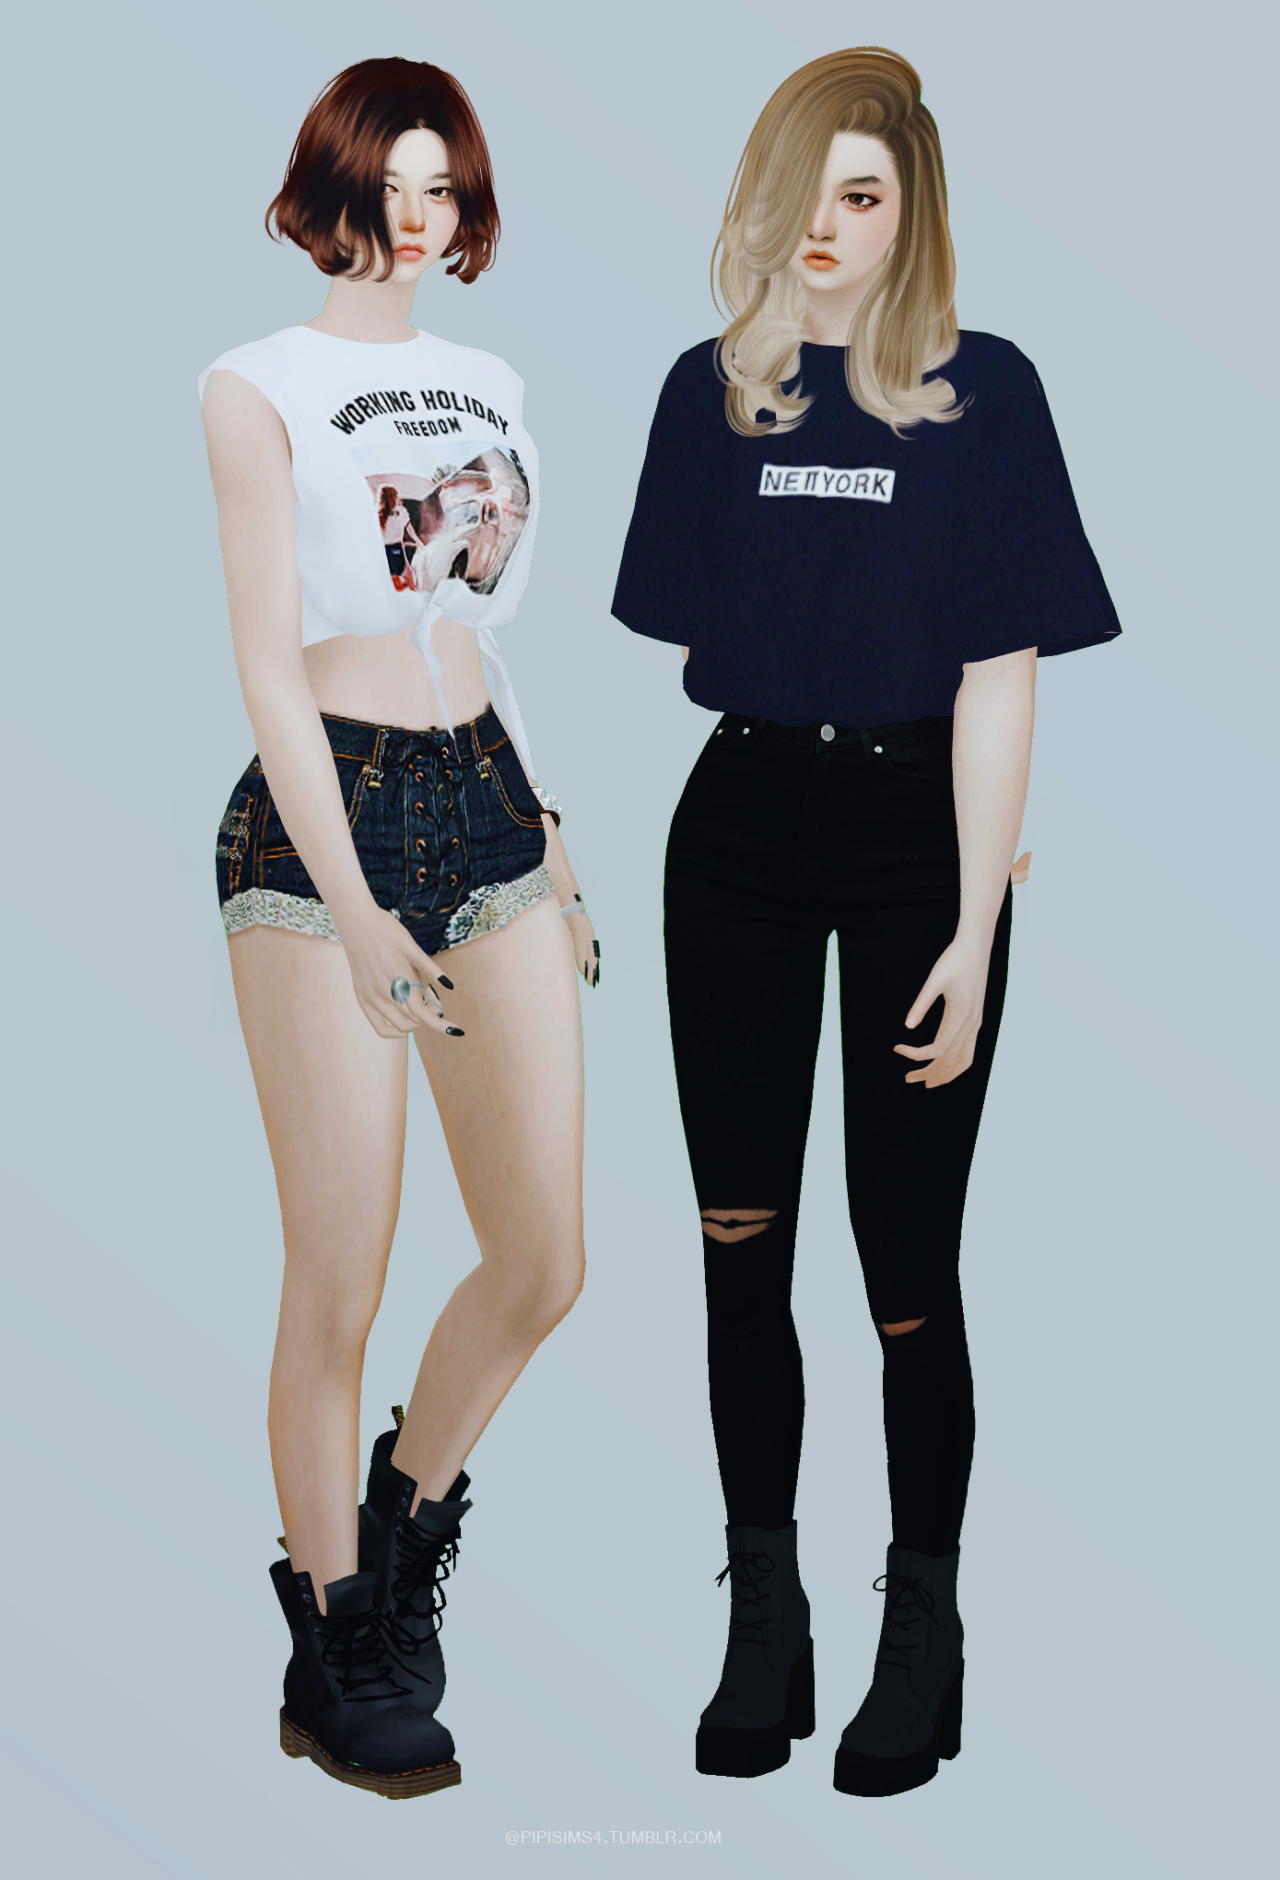 Girl pose set n1 by Pipisims4